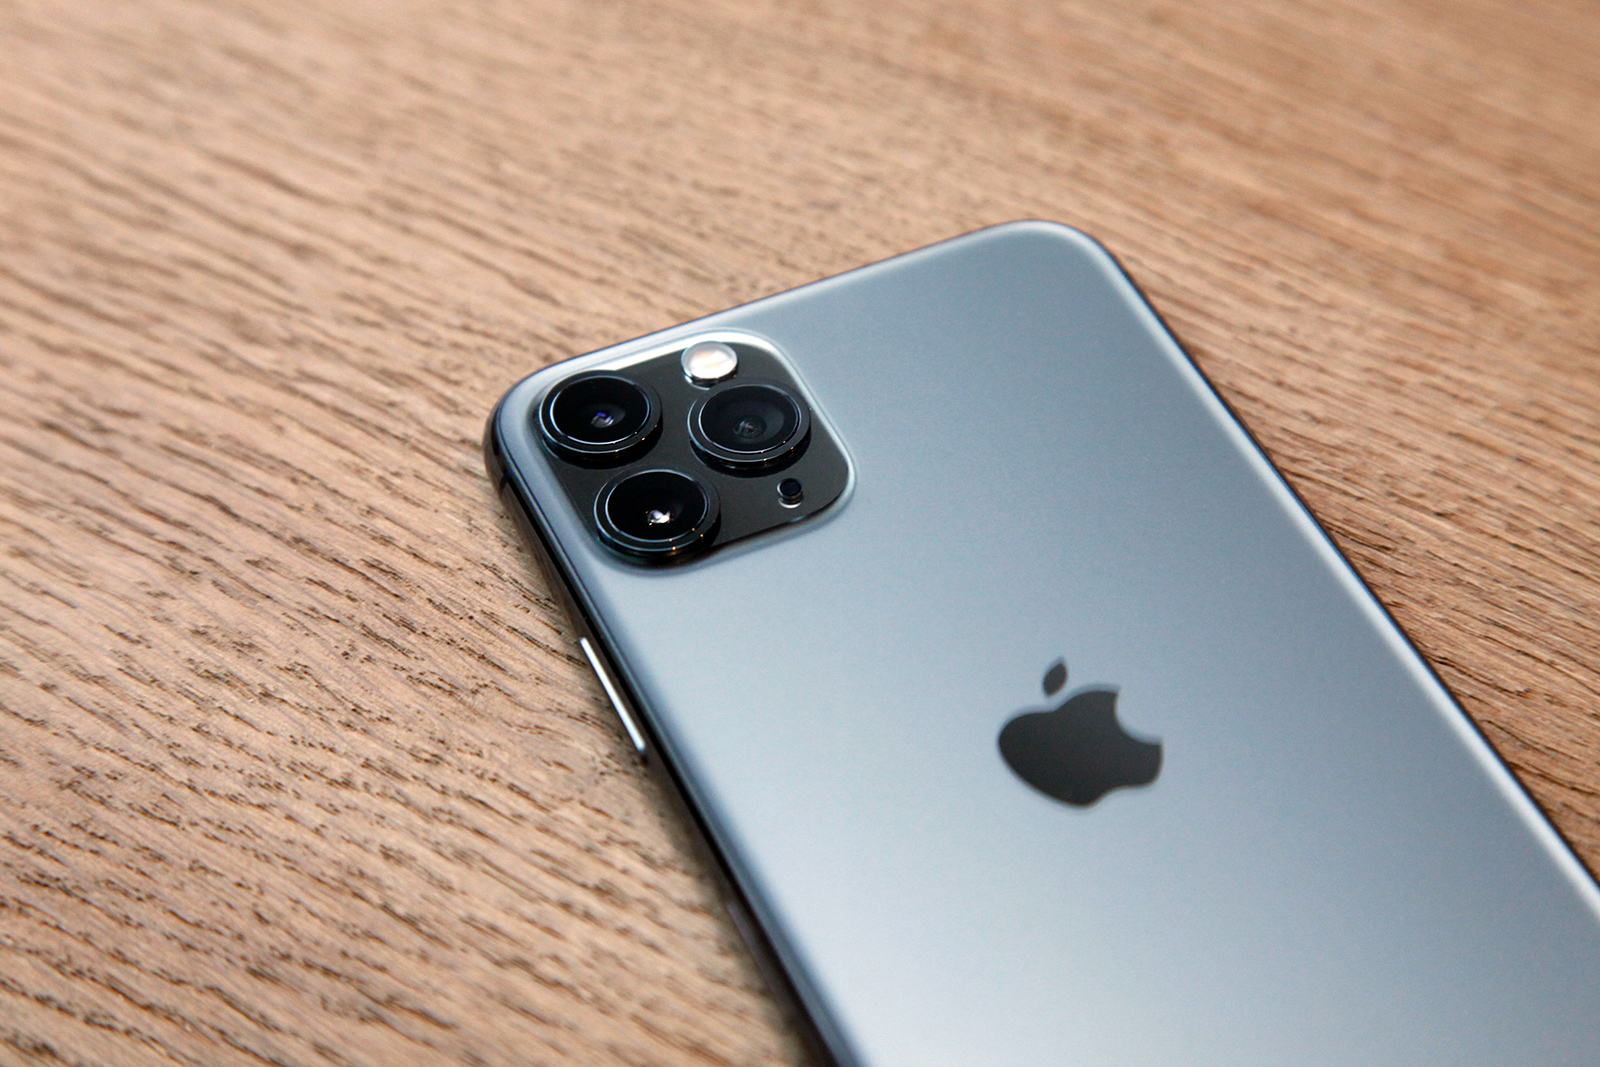 Photo battle between an iPhone 11 Pro and a $7,500 DSLR might surprise you